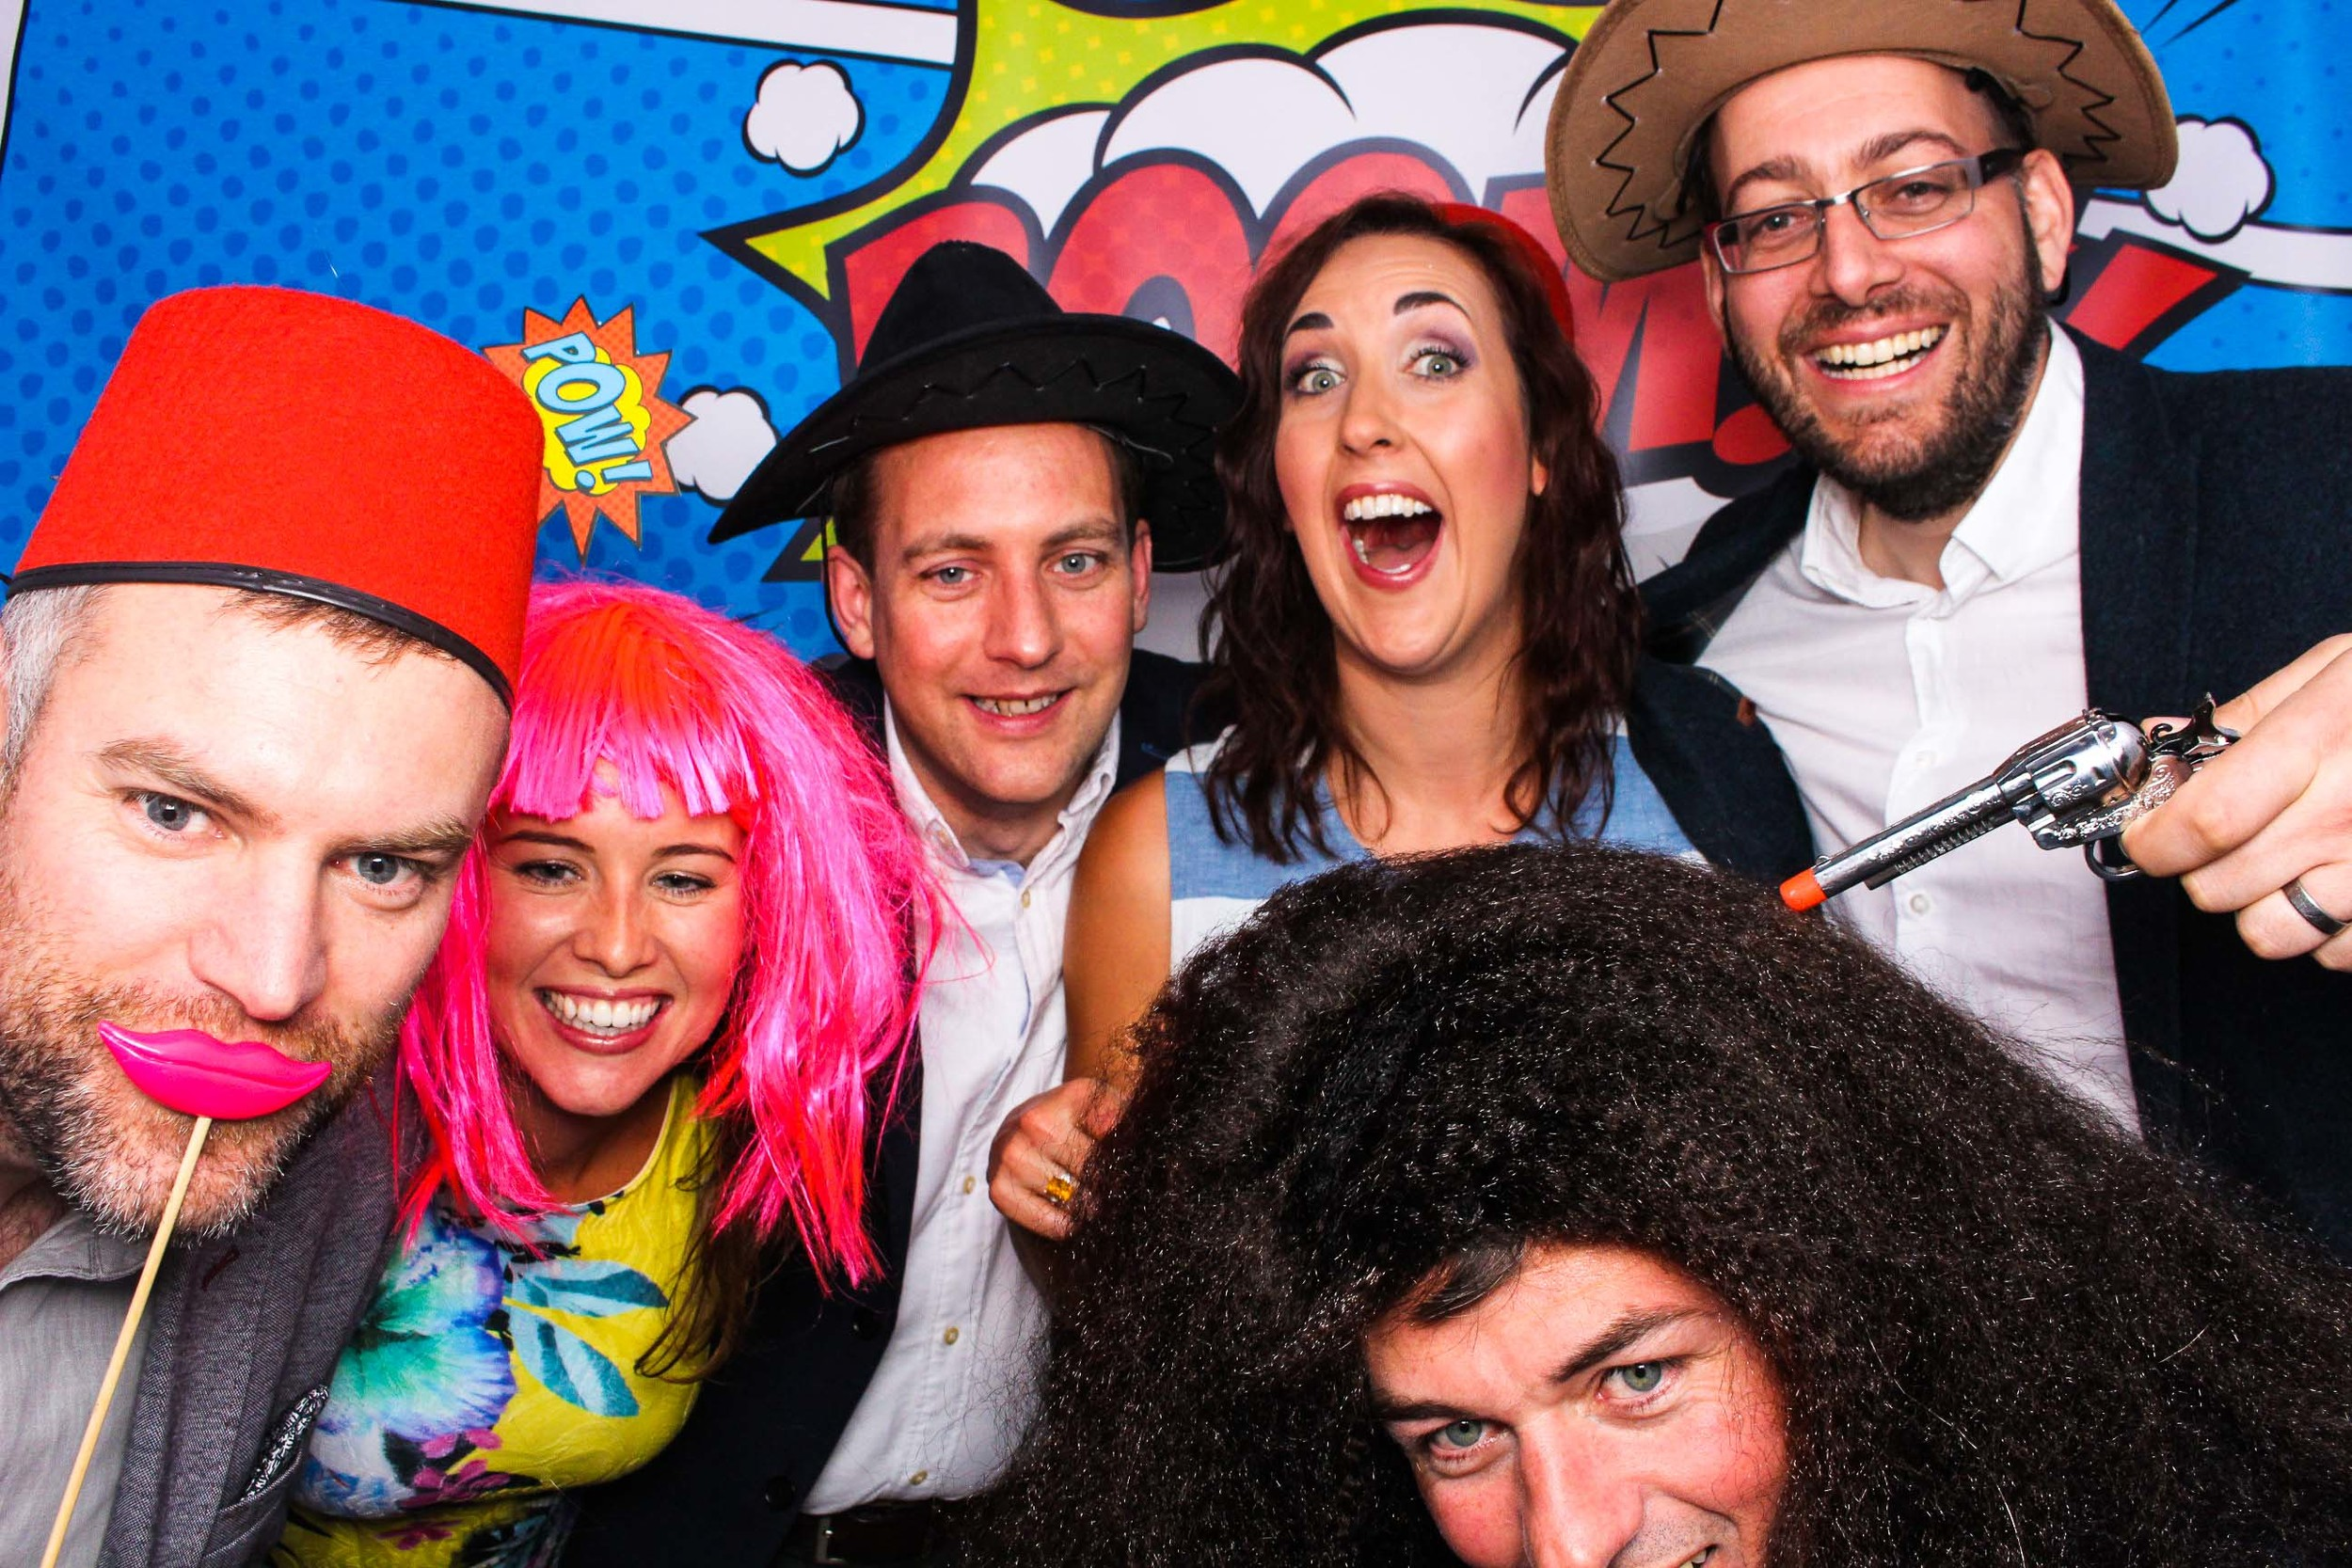 Fotoauto Photo Booth Hire - Shop Direct-256.jpg